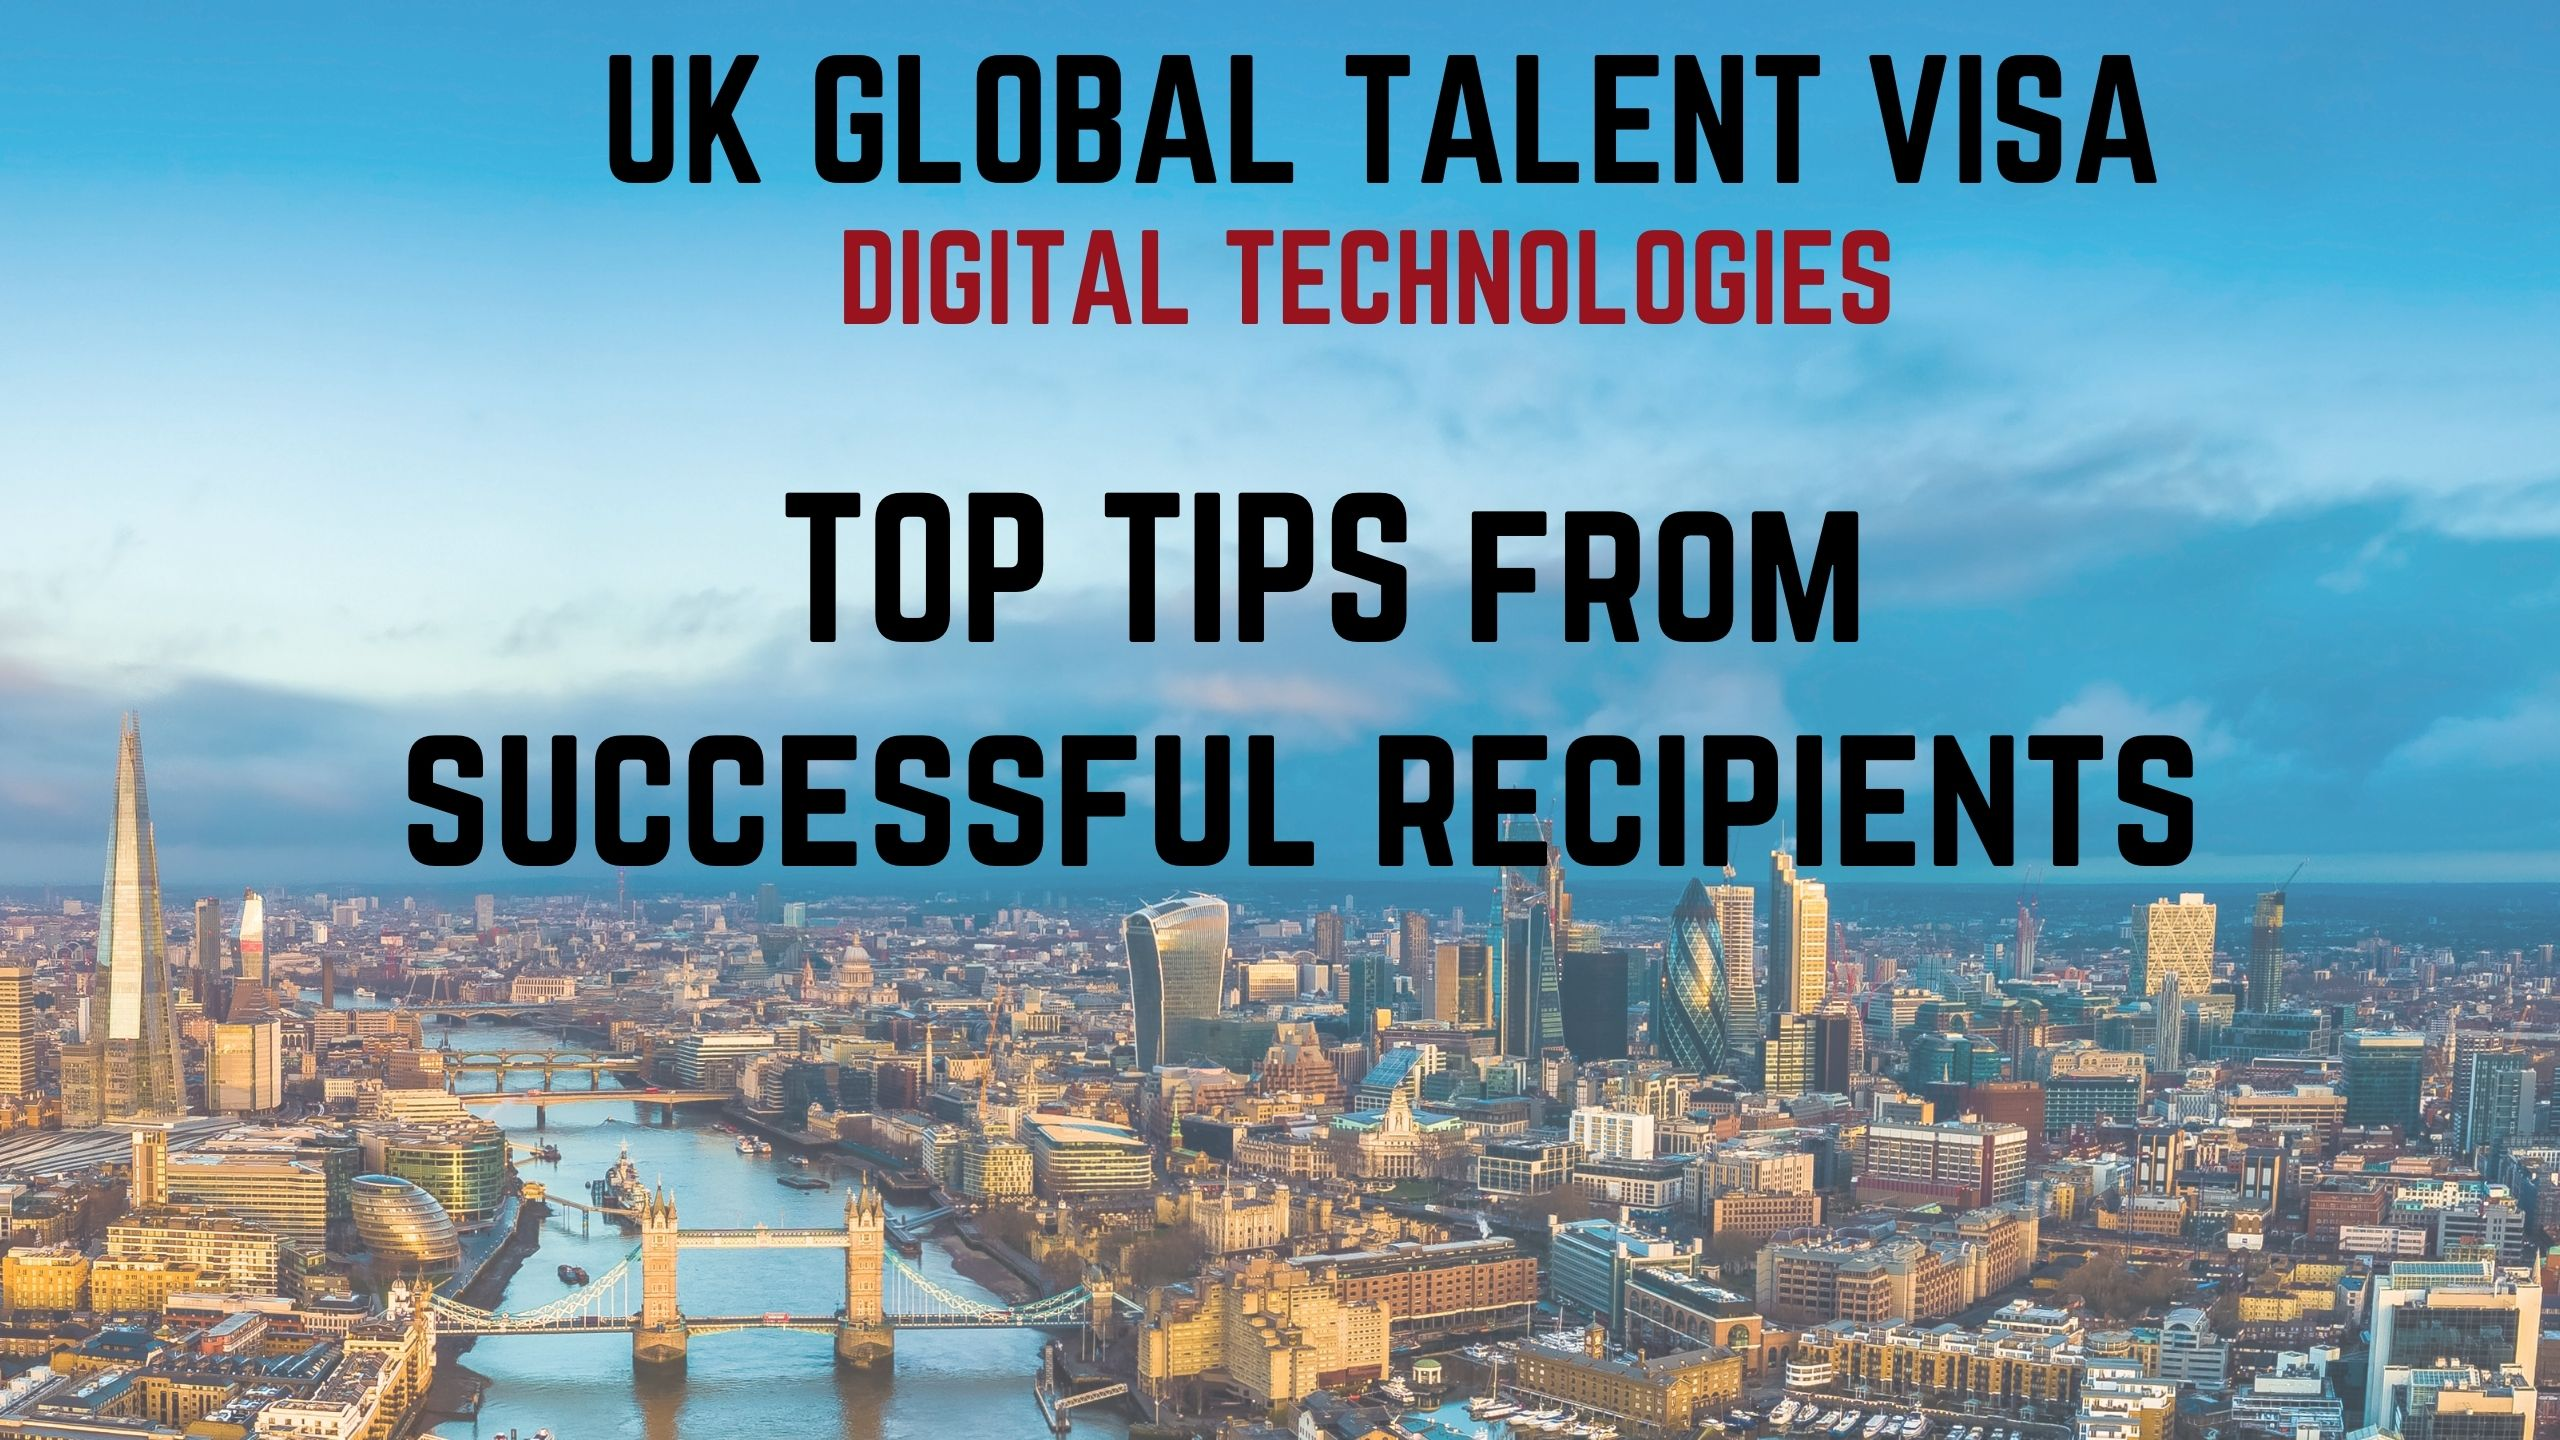 Top Tips from Successful Recipients of the UK Global Talent Visa in Digital Technologies